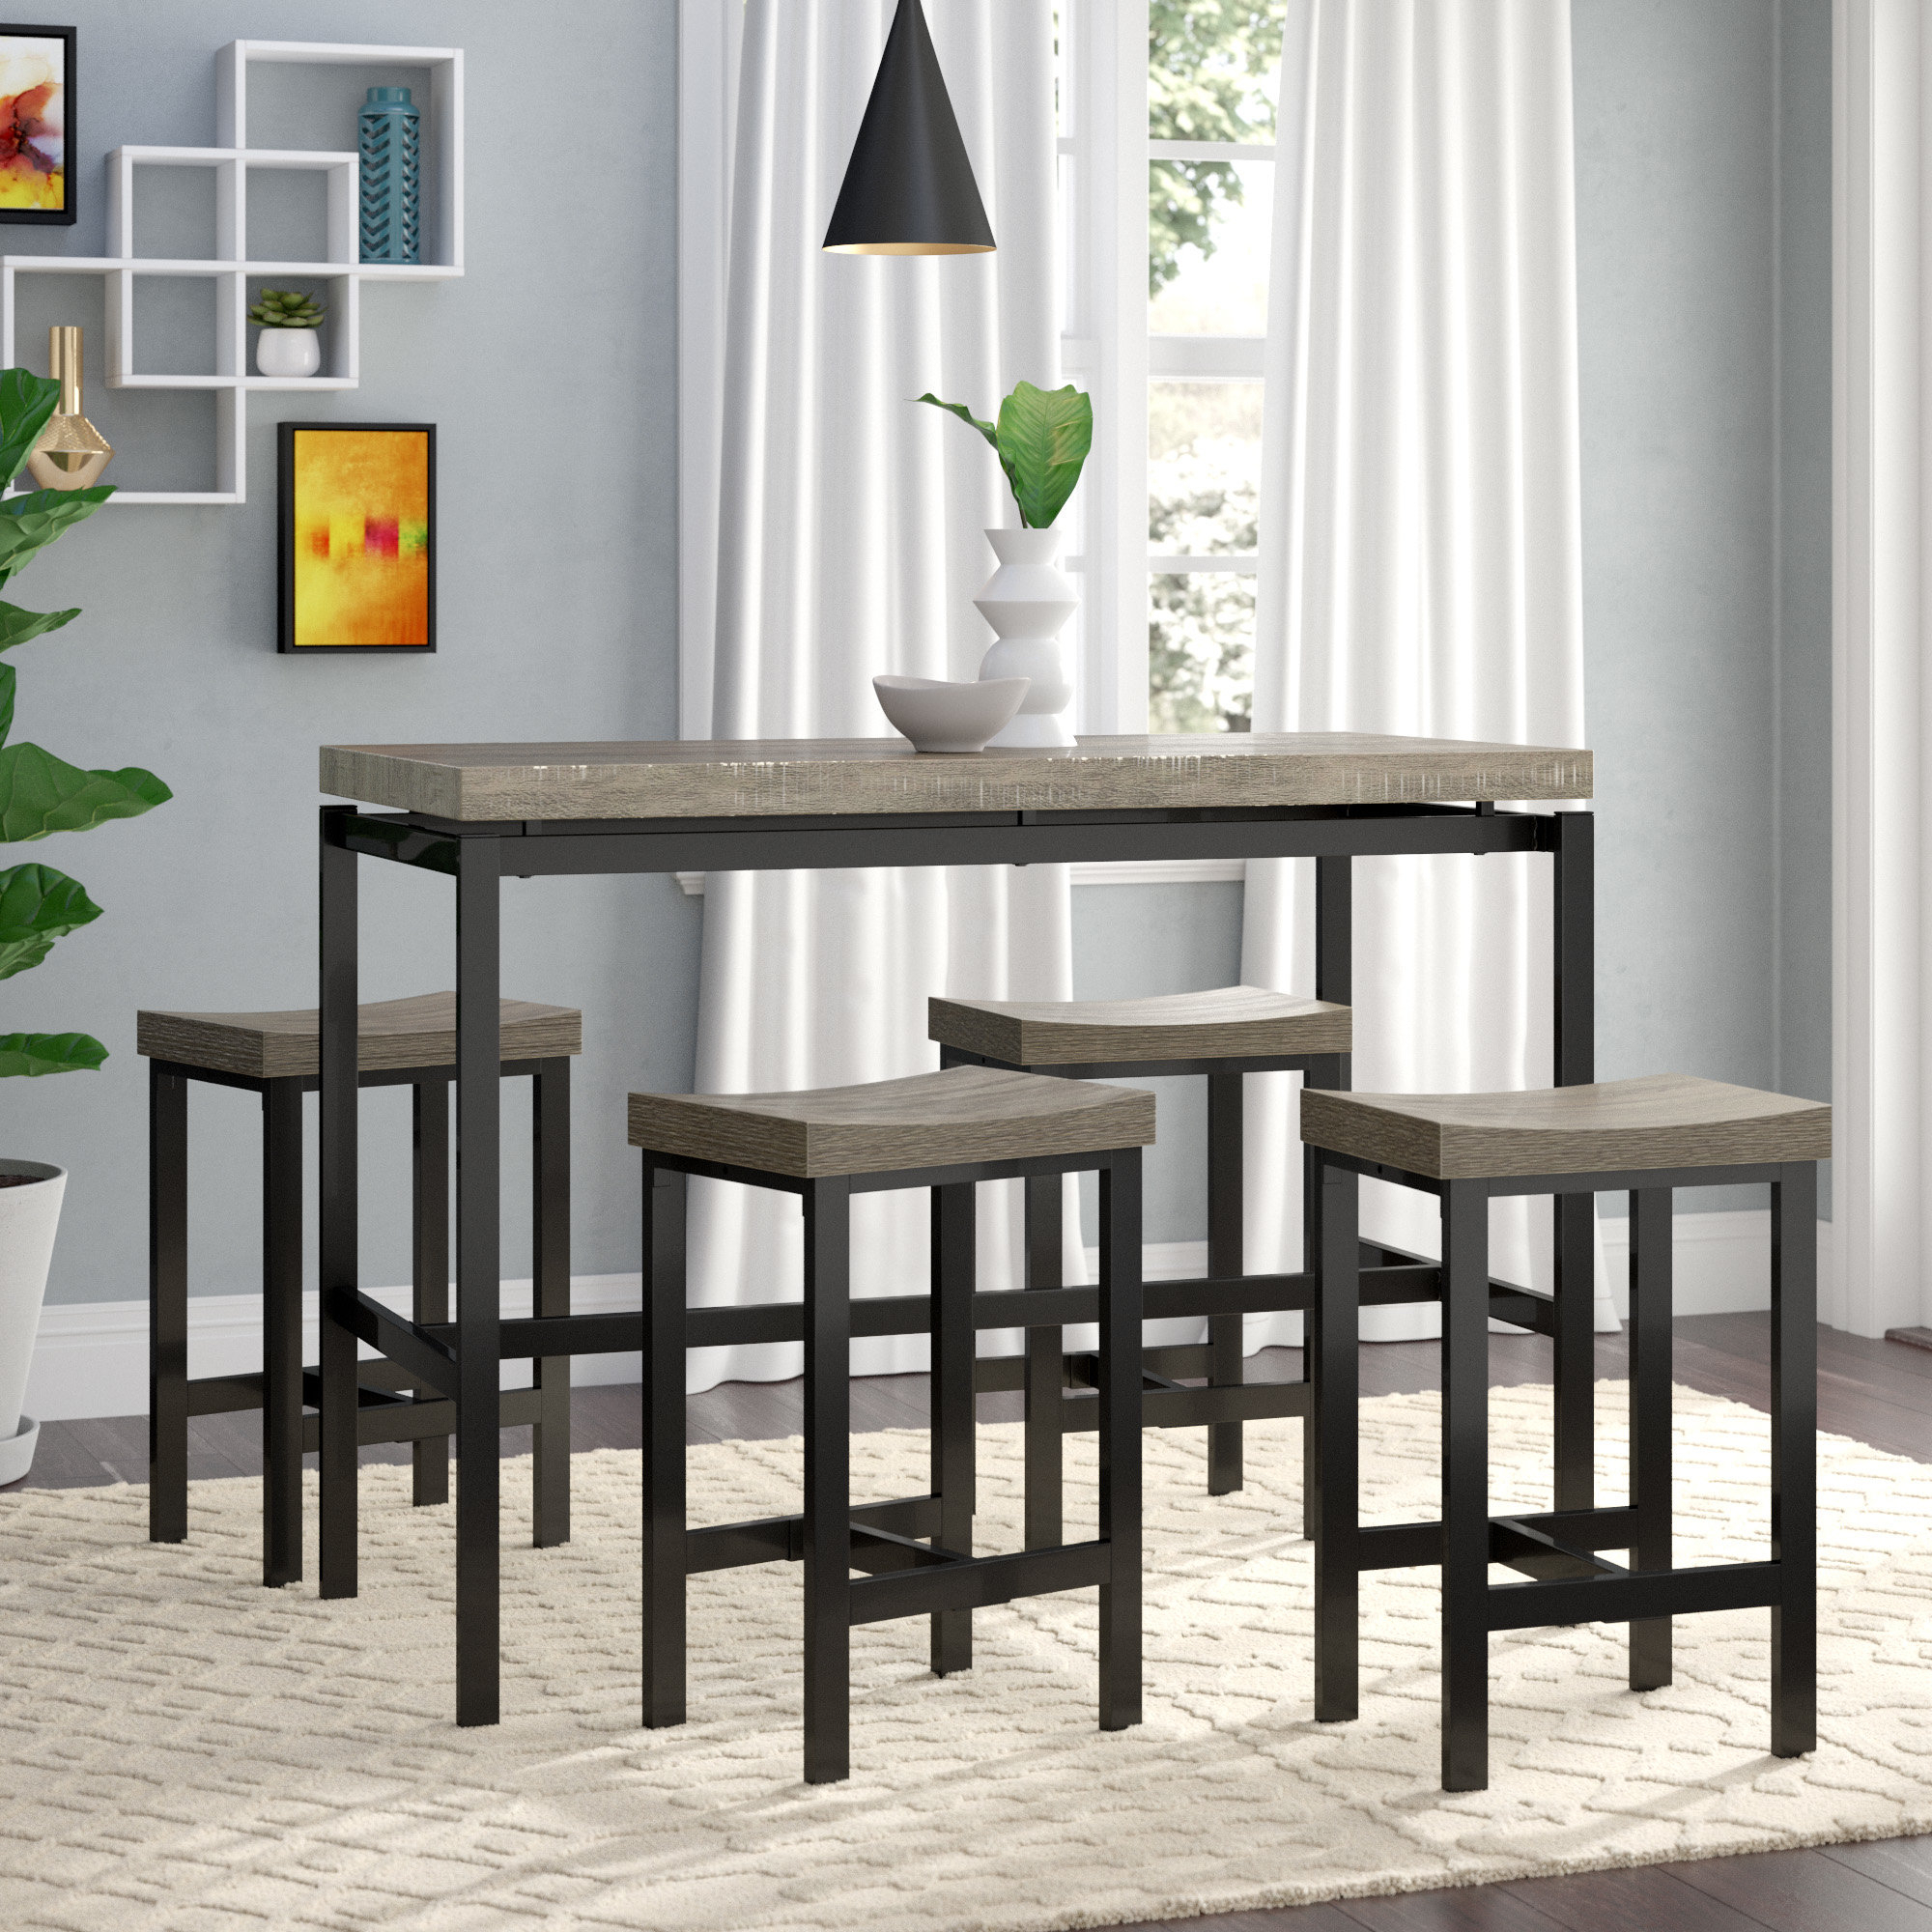 Wayfair Throughout Trendy Miskell 3 Piece Dining Sets (View 20 of 25)